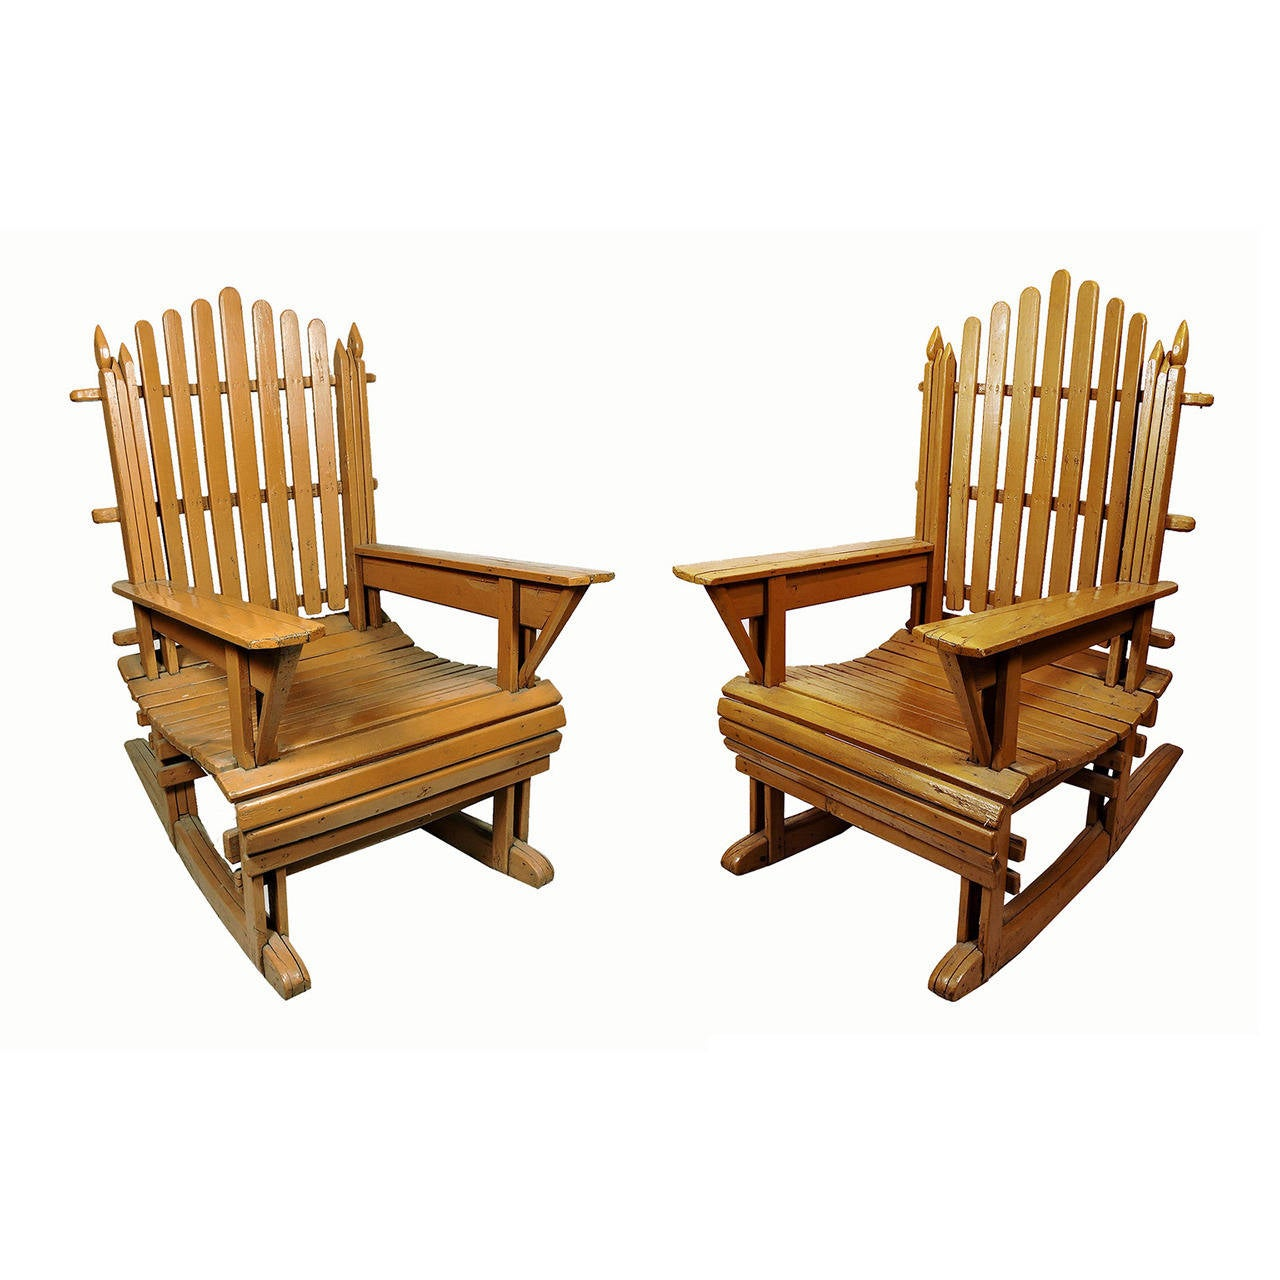 this pair of vintage painted wood adirondack rocking chairs is no